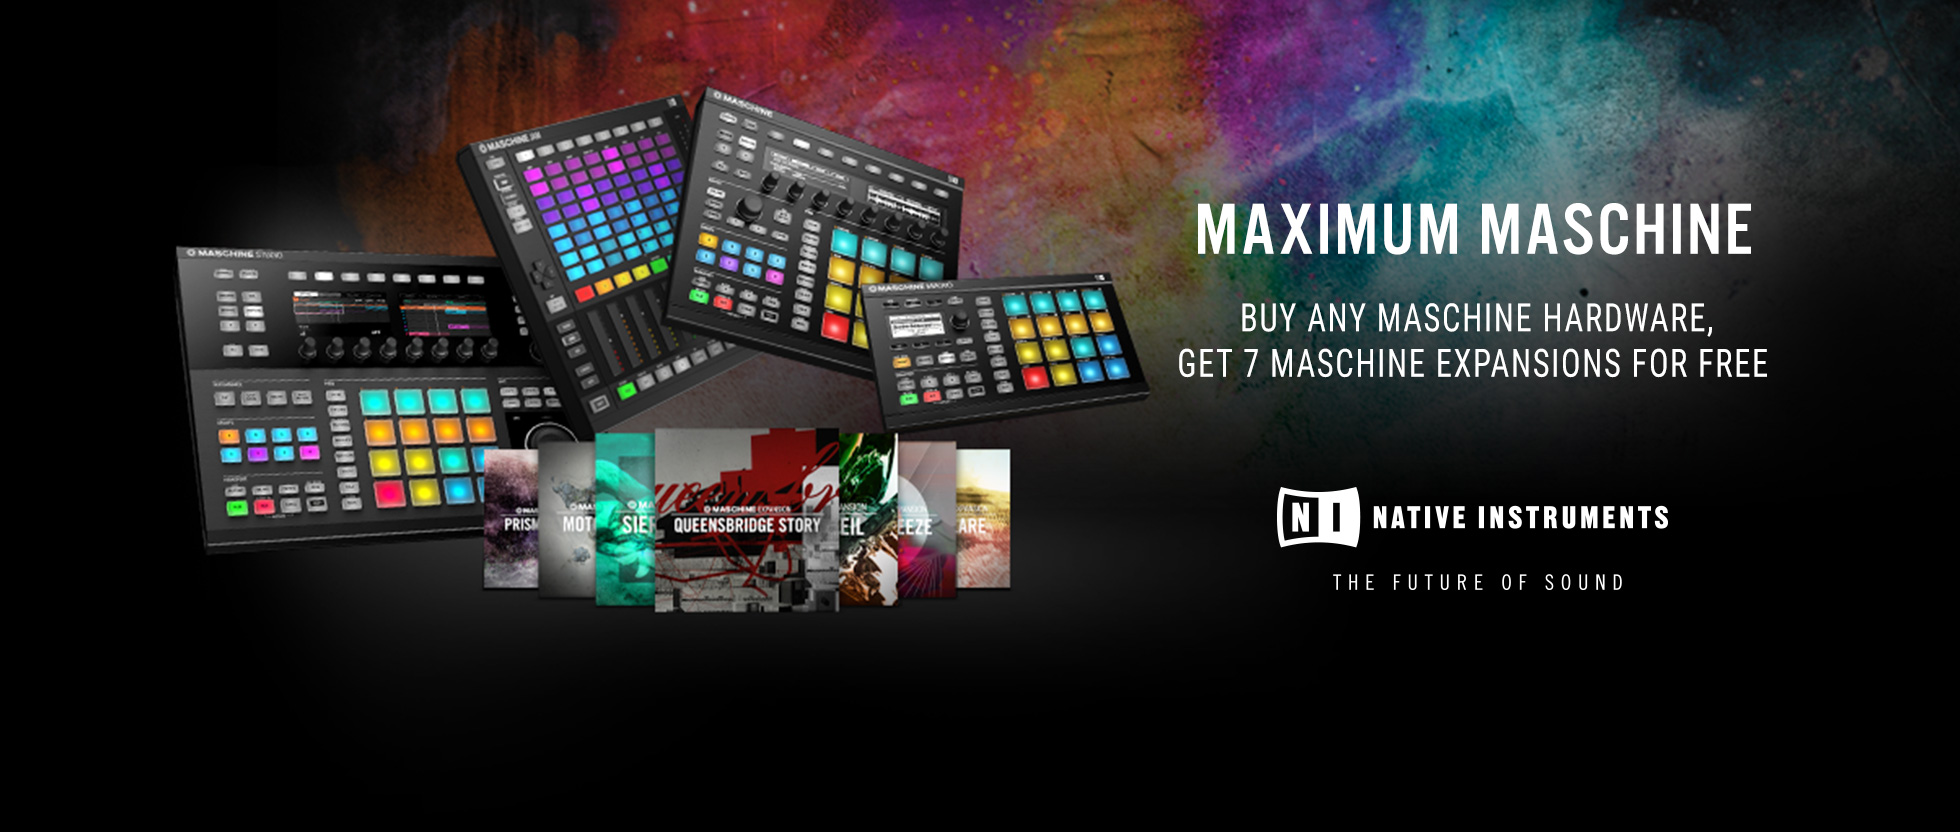 Maschine Expansion Offer